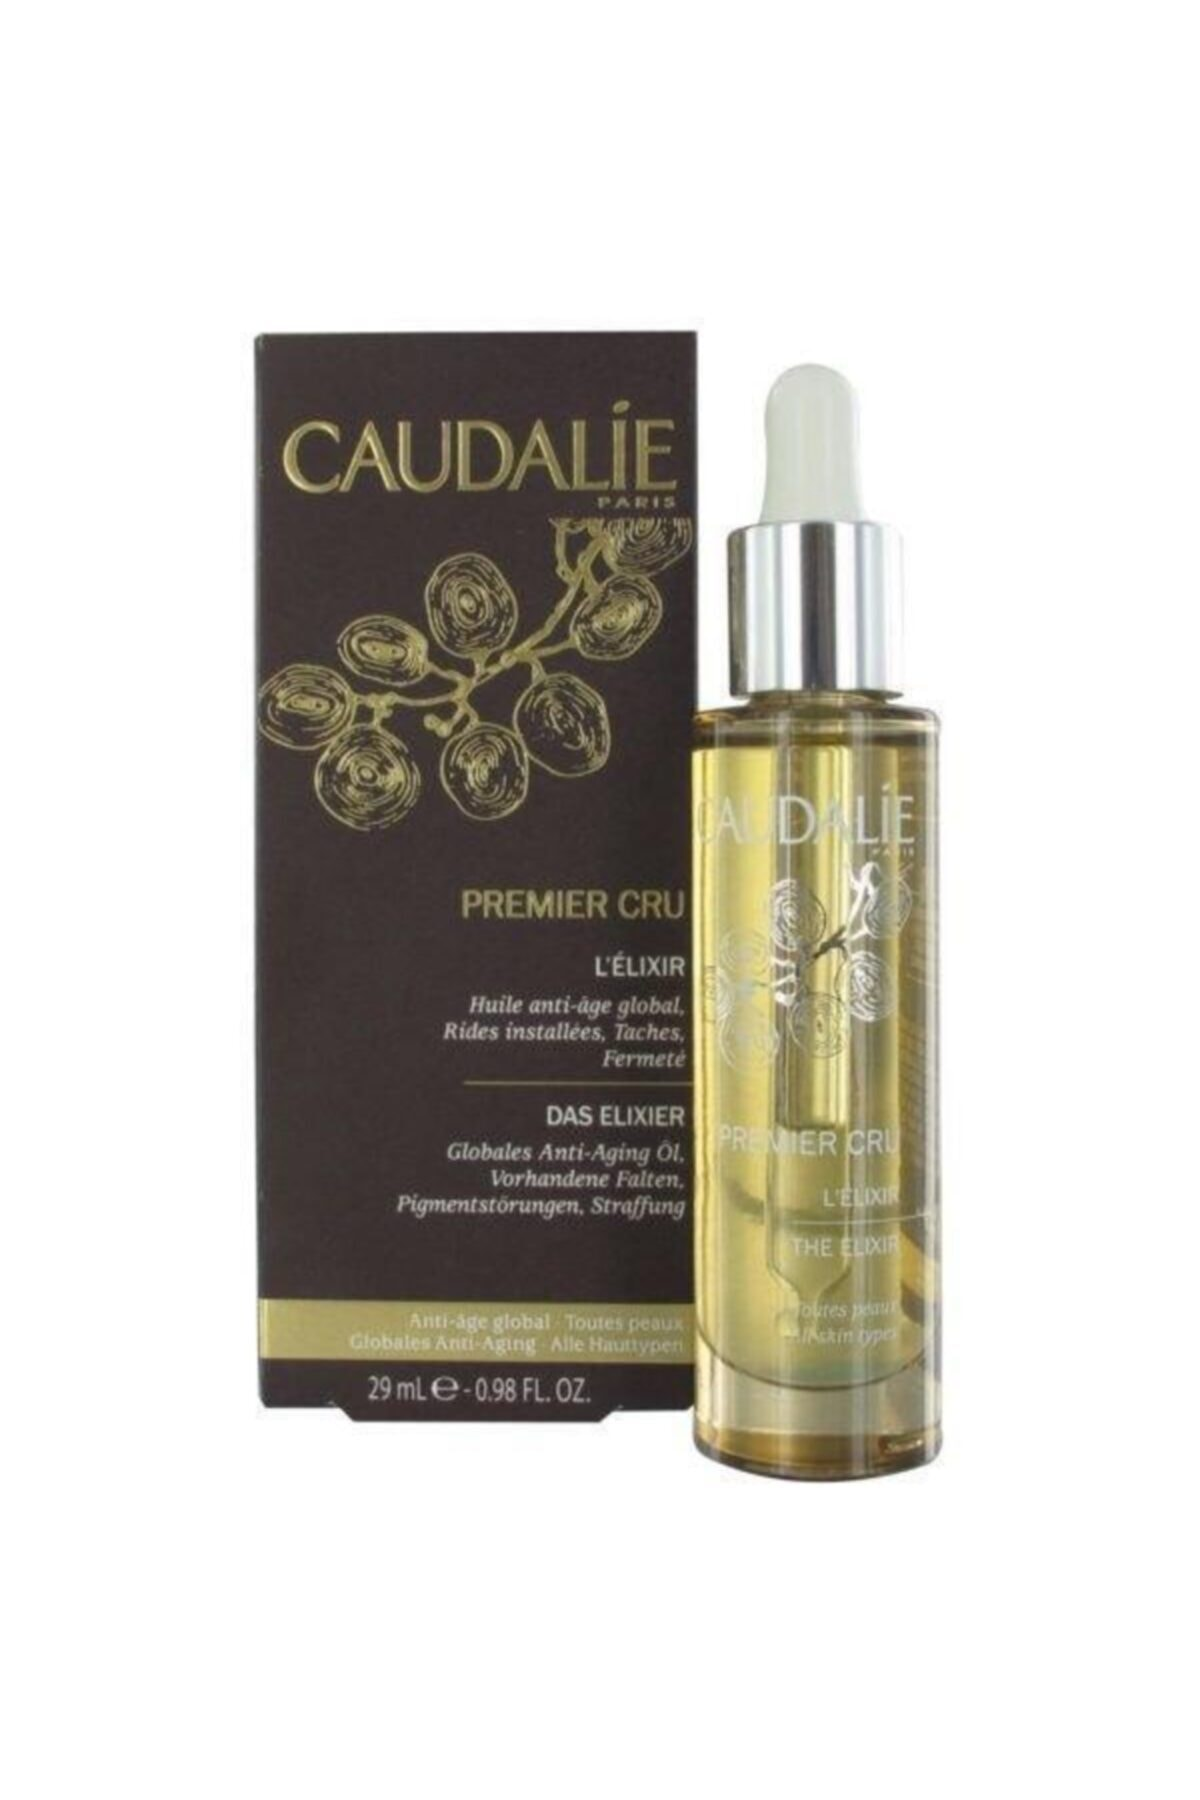 Caudalie Premier Cru The Elixir 29 ml 1